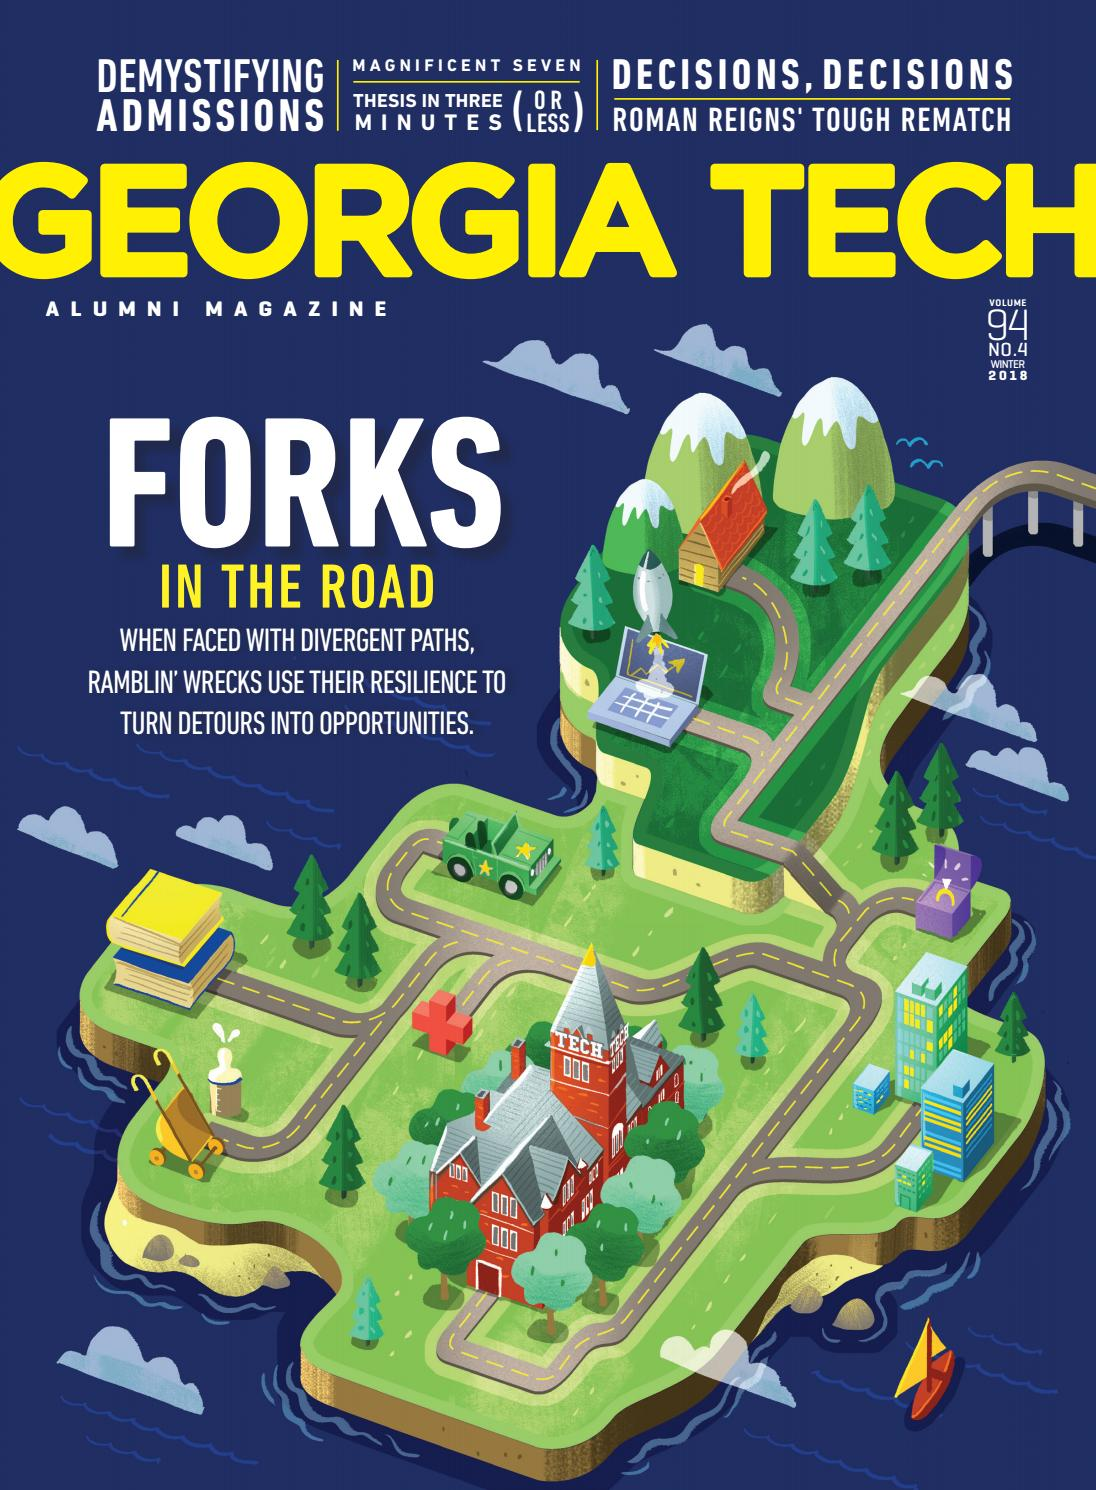 Georgia Tech Alumni Magazine, Vol  94 No  4, Winter 2018 by